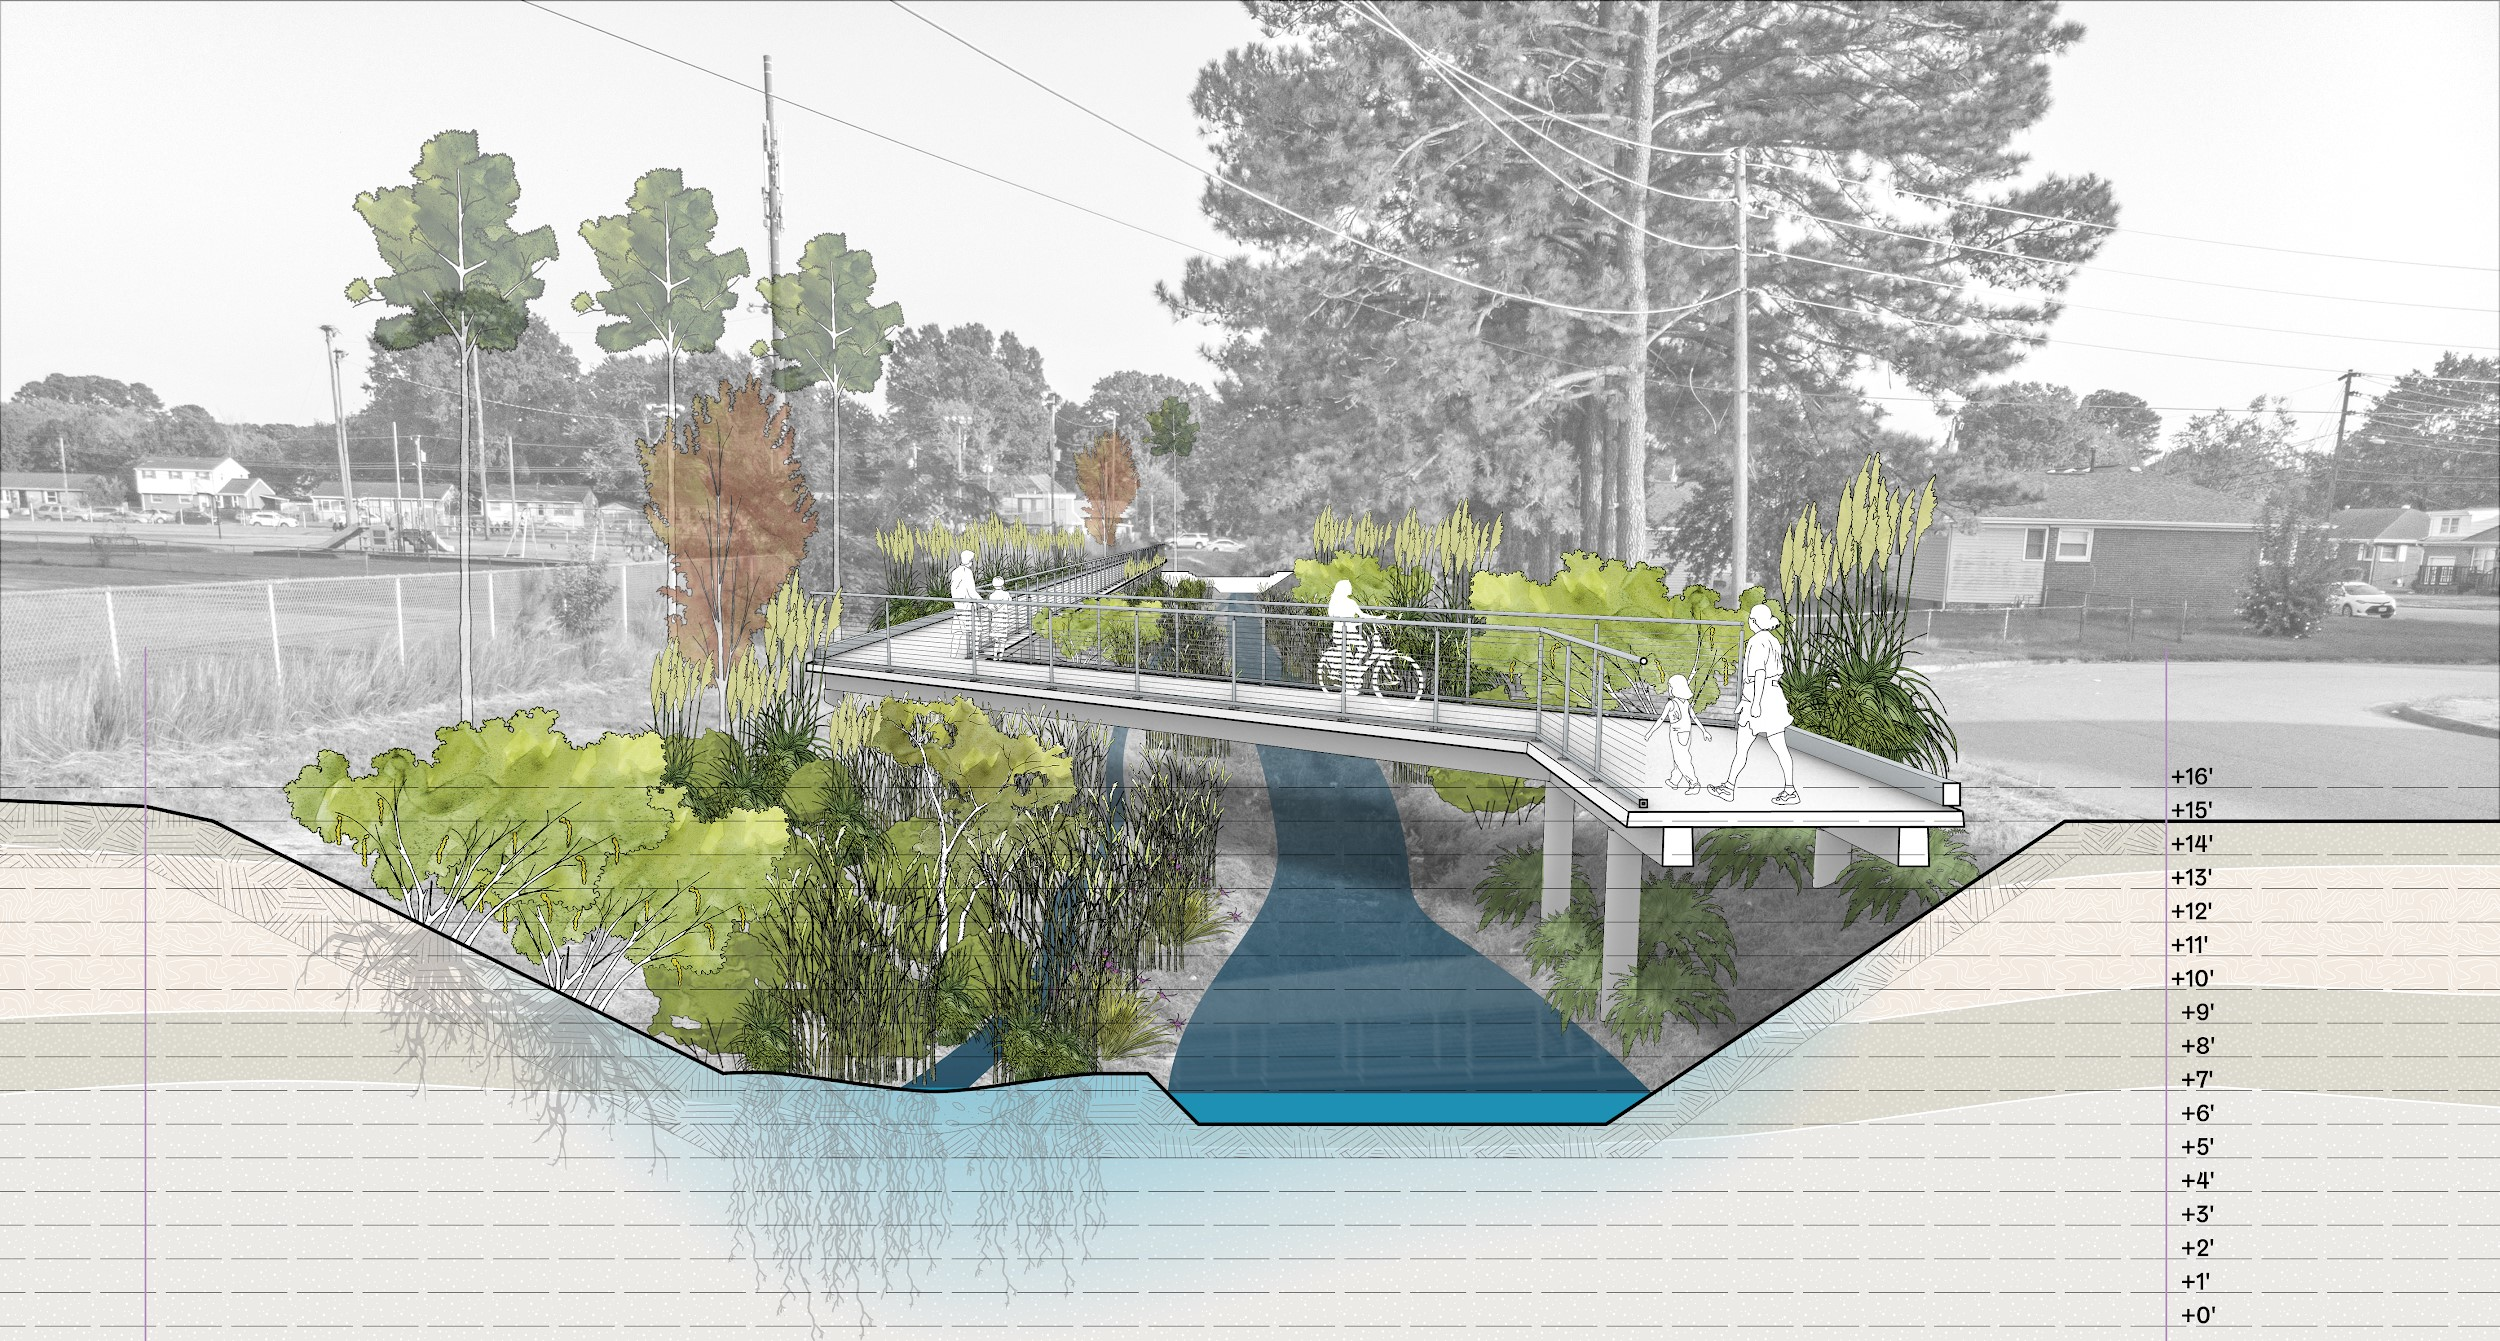 Architectural illustration of elevated walkway with pedestrians and bicycles over a small body of water. Elevation information is included.